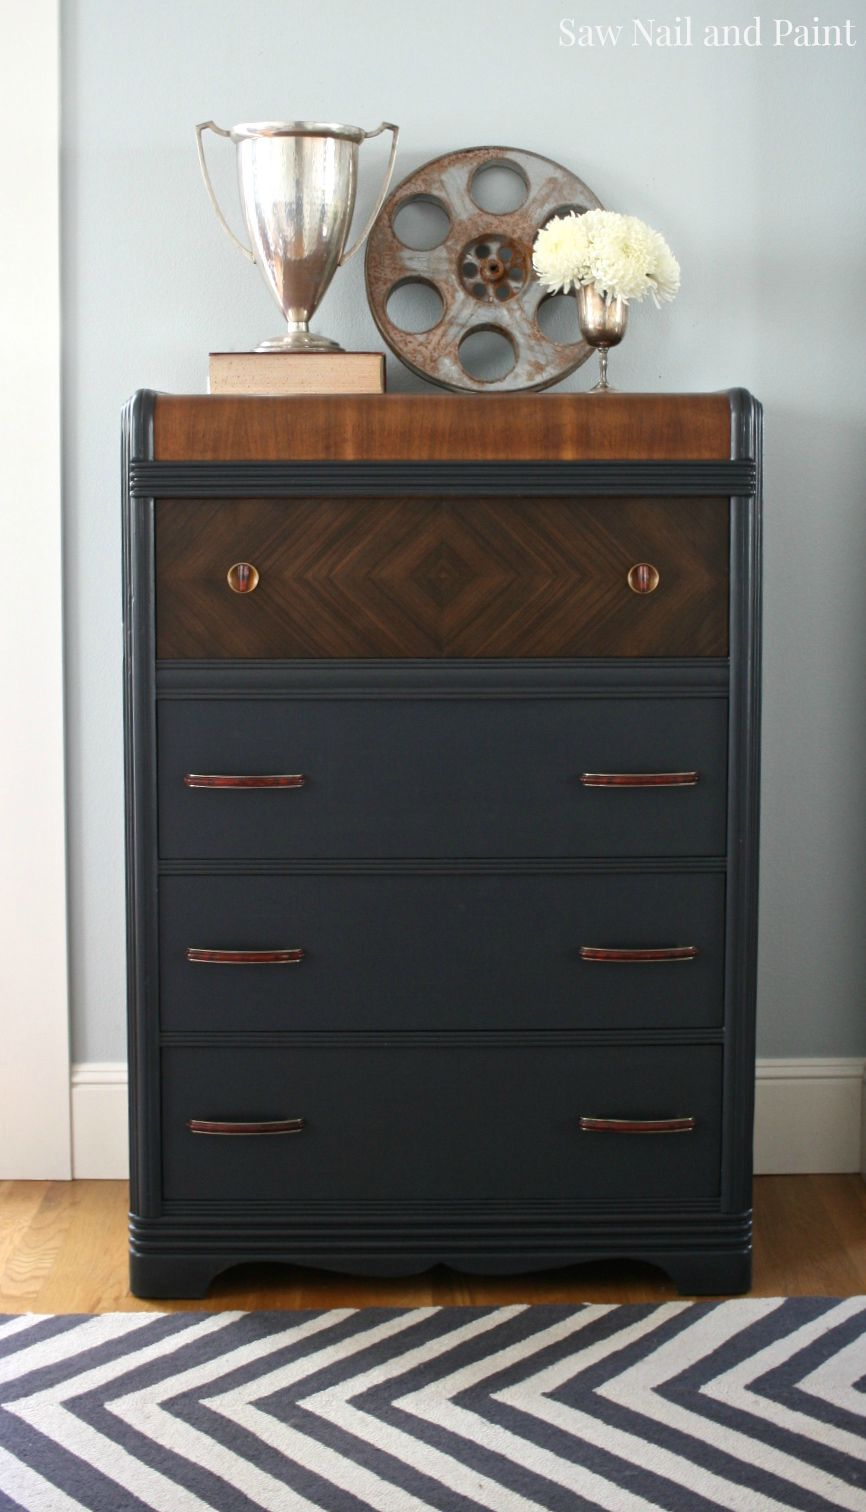 Charcoal Gray Waterfall Dresser Saw Nail And Paint